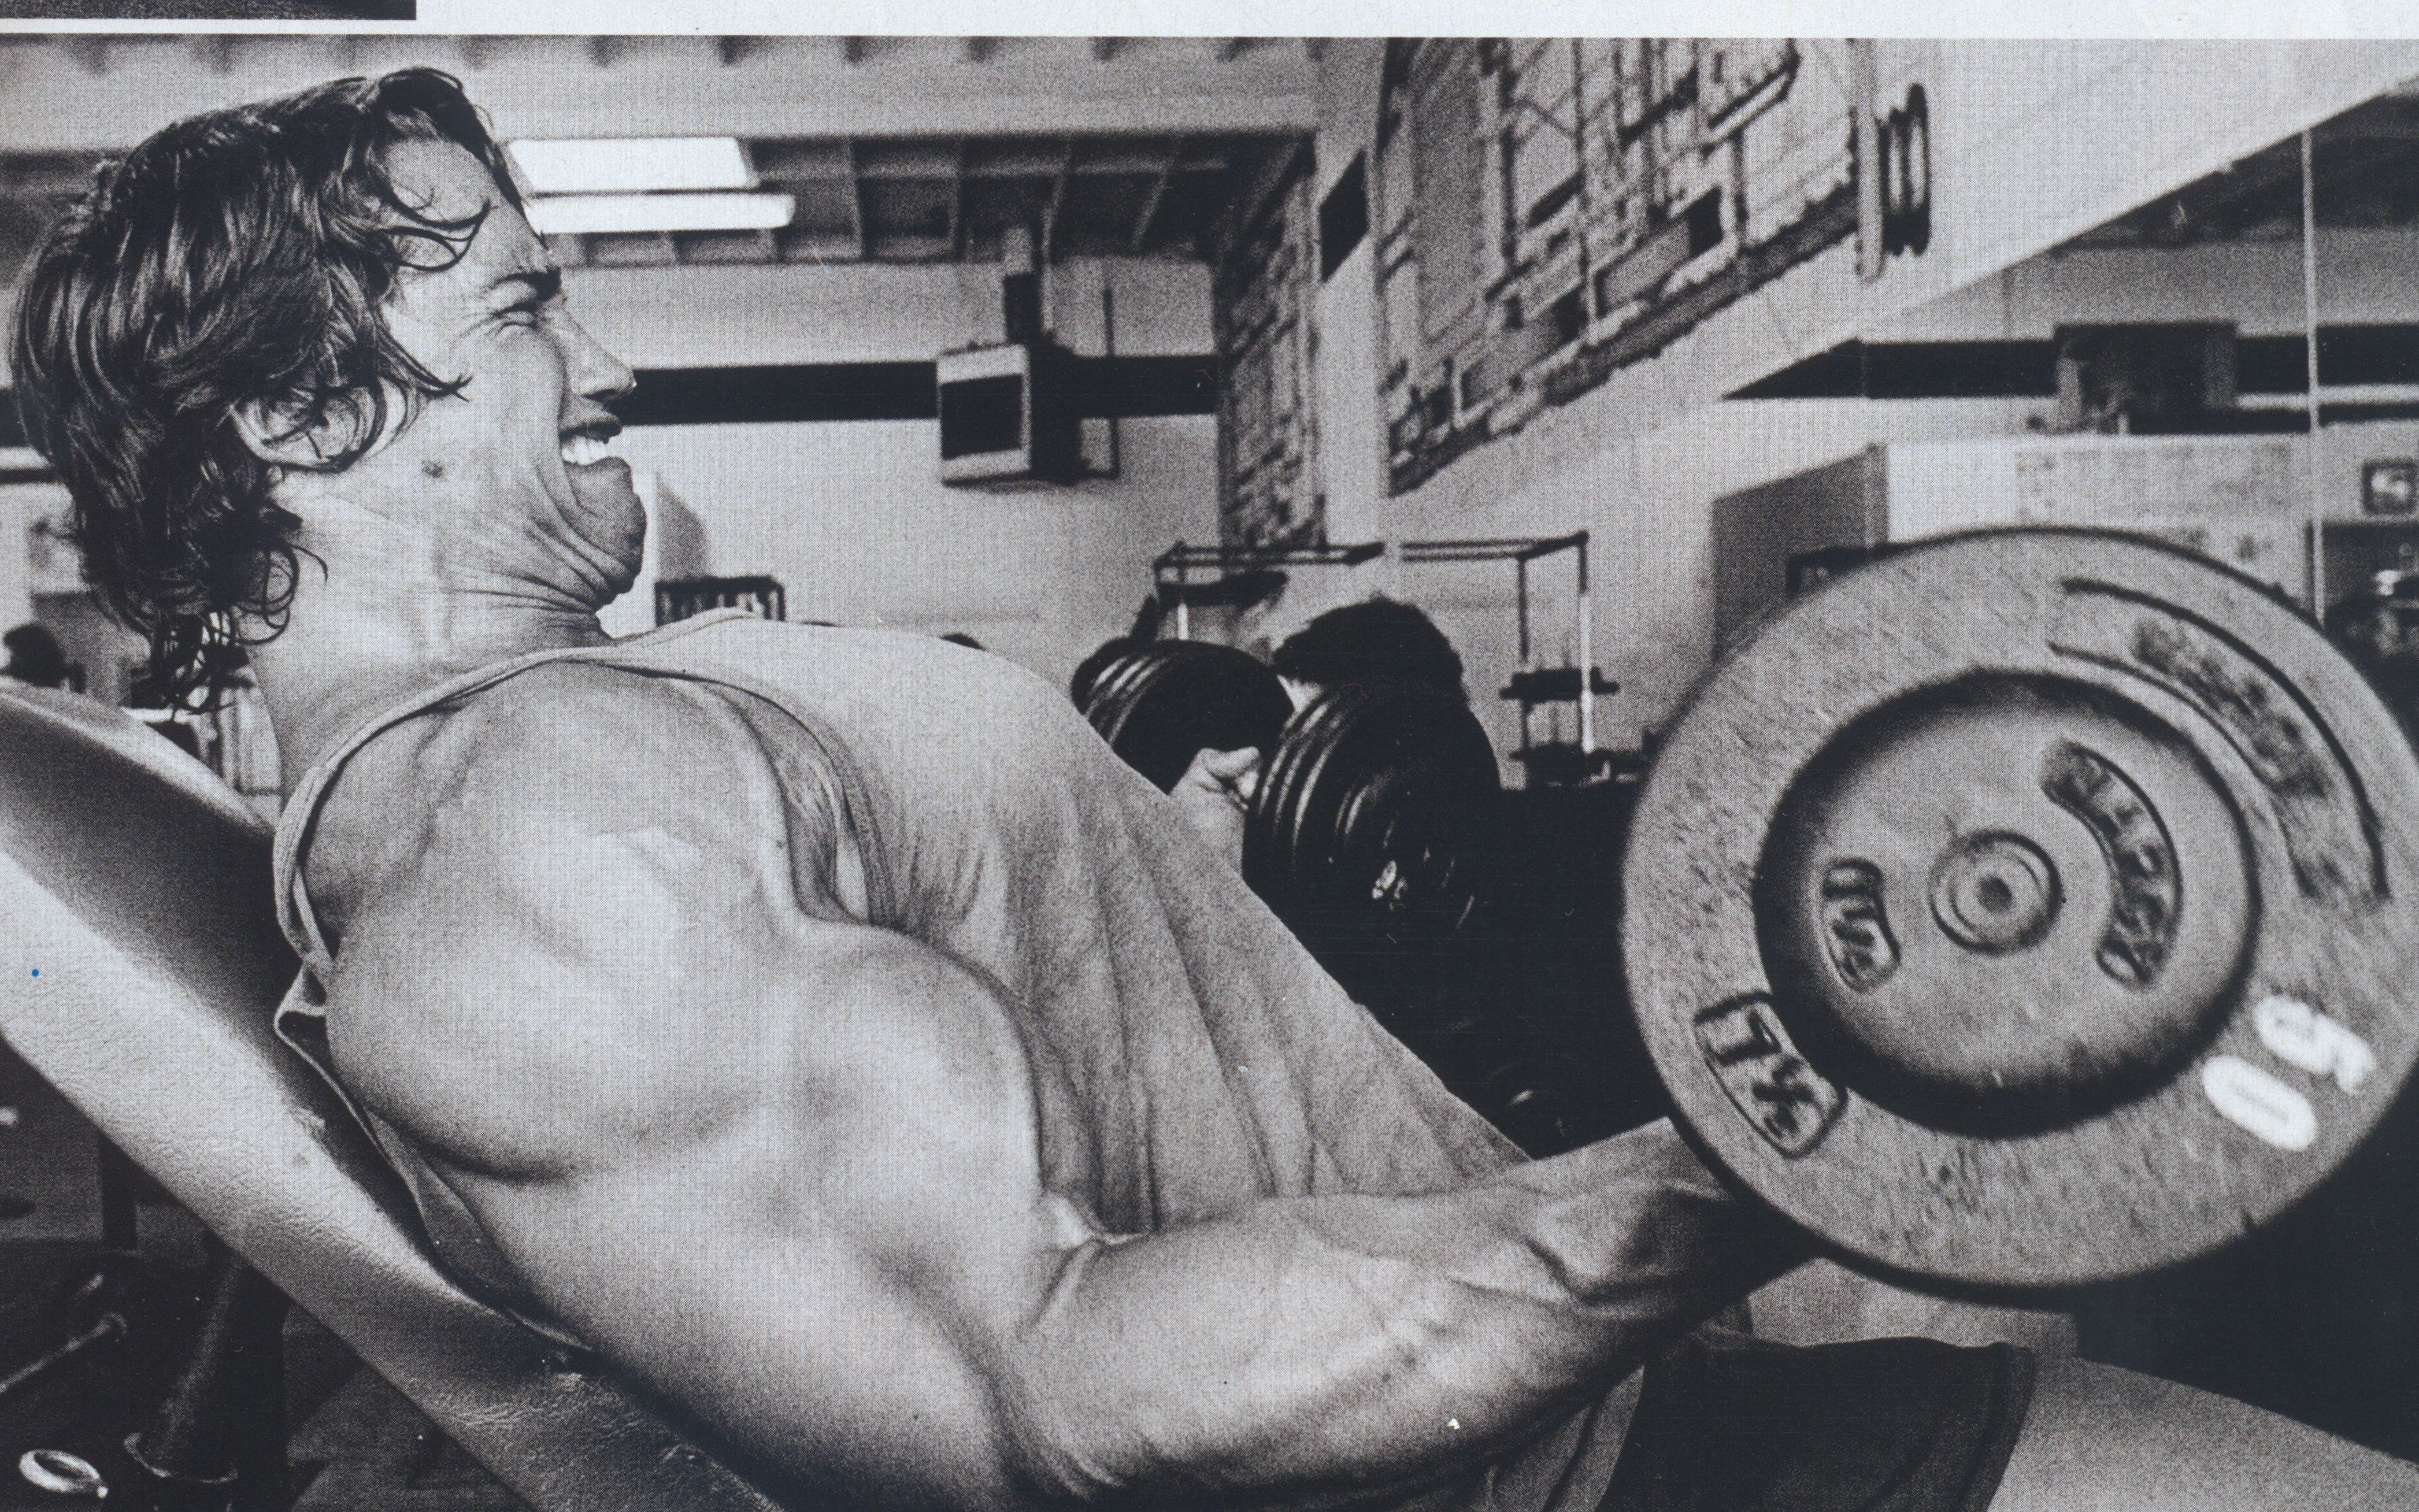 Arnold Schwarzenegger lifting weights